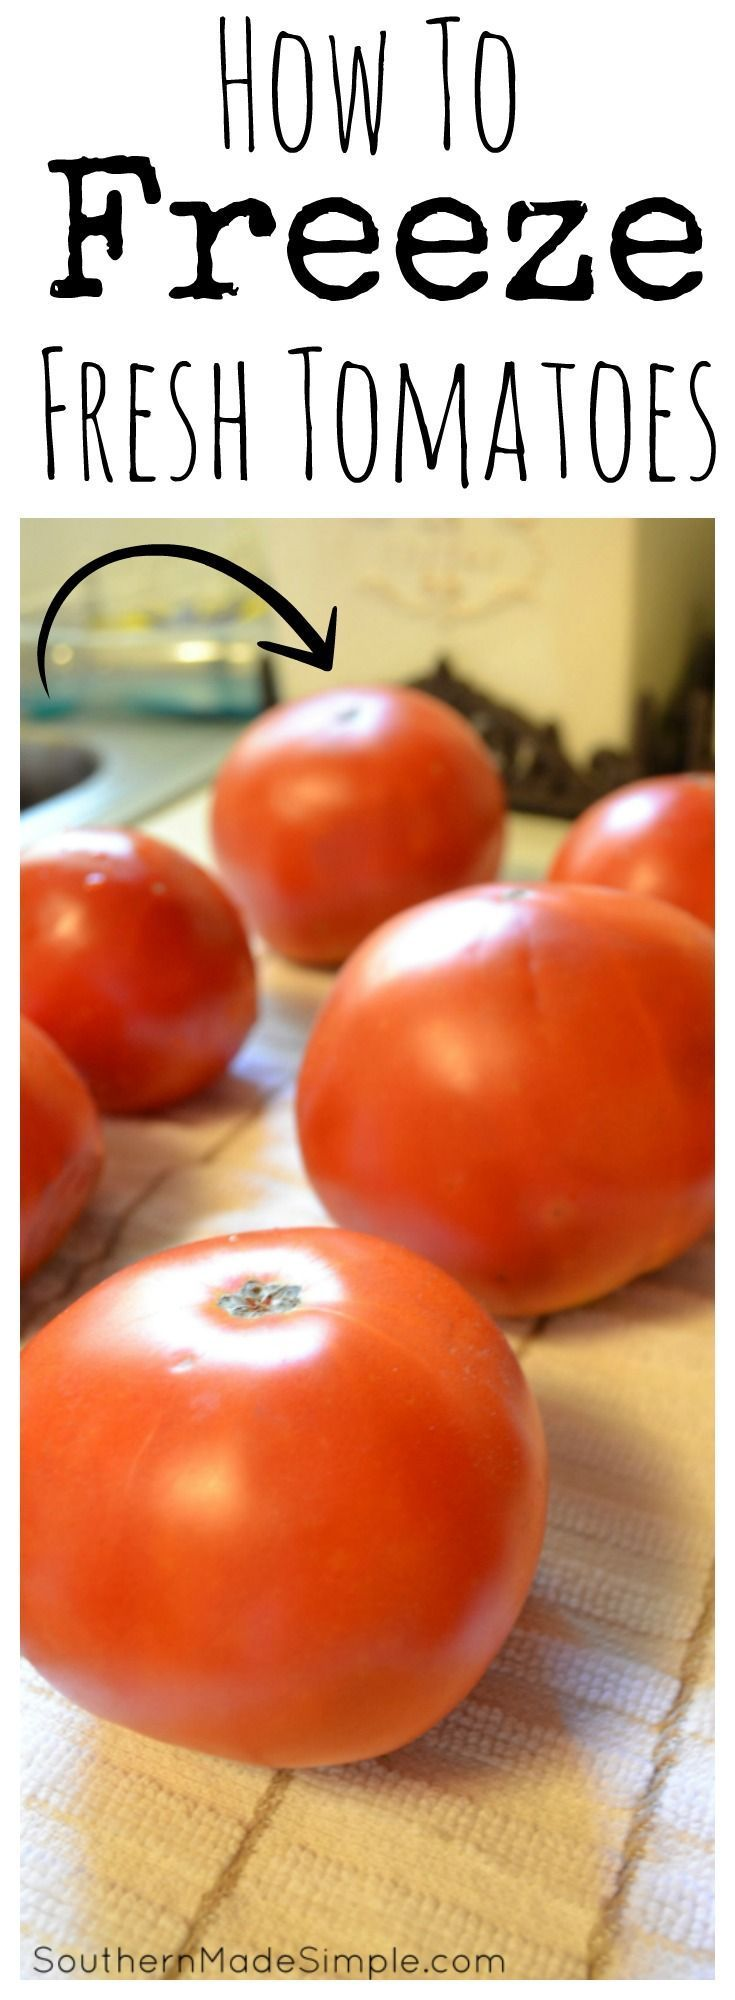 How to freeze fresh tomatoes - the easy way! A simple step-by-step tutorial on how to put up all of those extra tomatoes in your garden to use all year long!